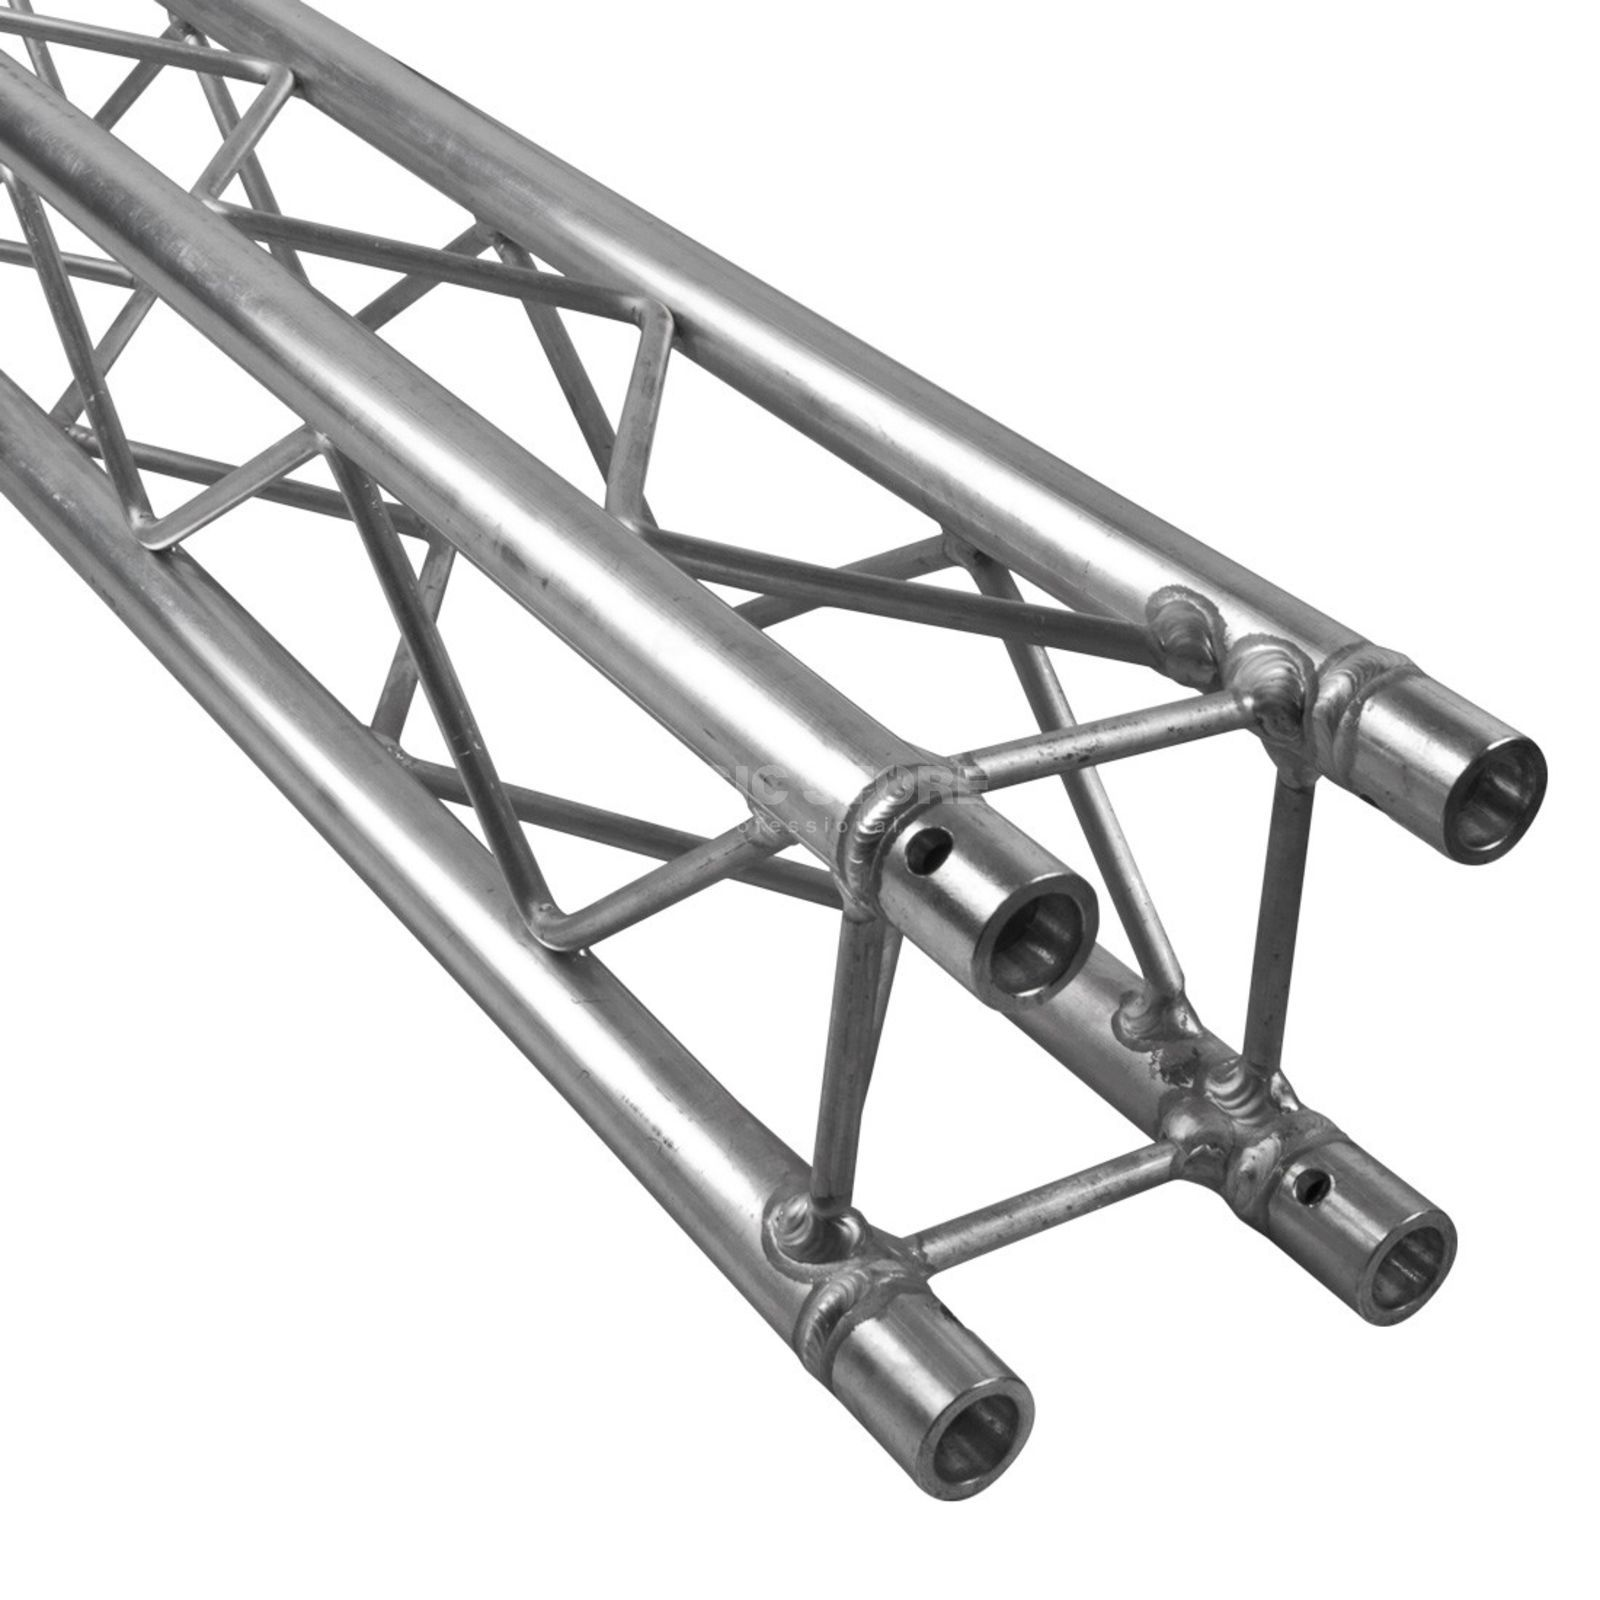 DURATRUSS DT 14-150 4-Point Truss, 150cm incl.  Conical Coupler Produktbillede